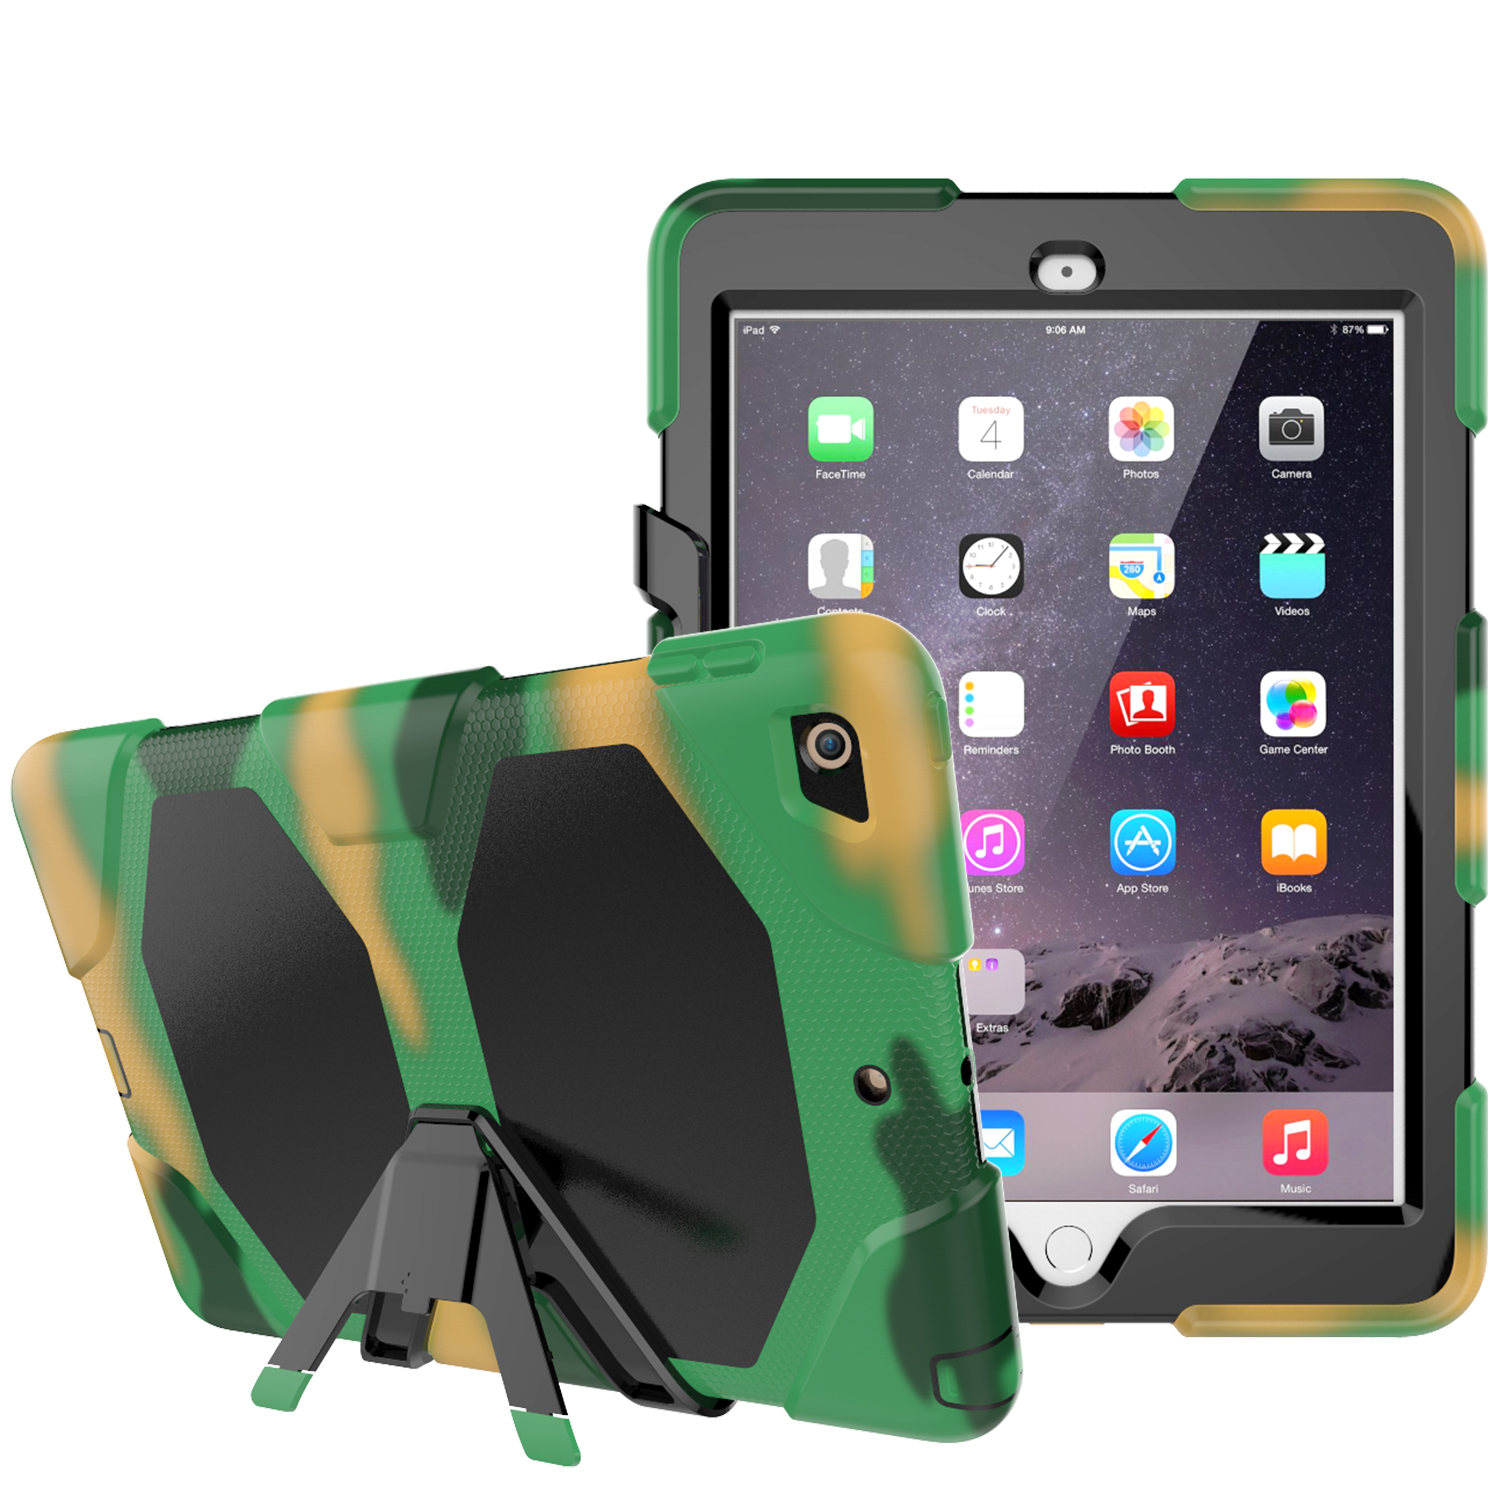 For New iPad 9.7 Inch 2017 Kickstand Case,Heavy Duty Shockproof Rugged Armor Three Layer Hard PC+Silicone Full Body Protective